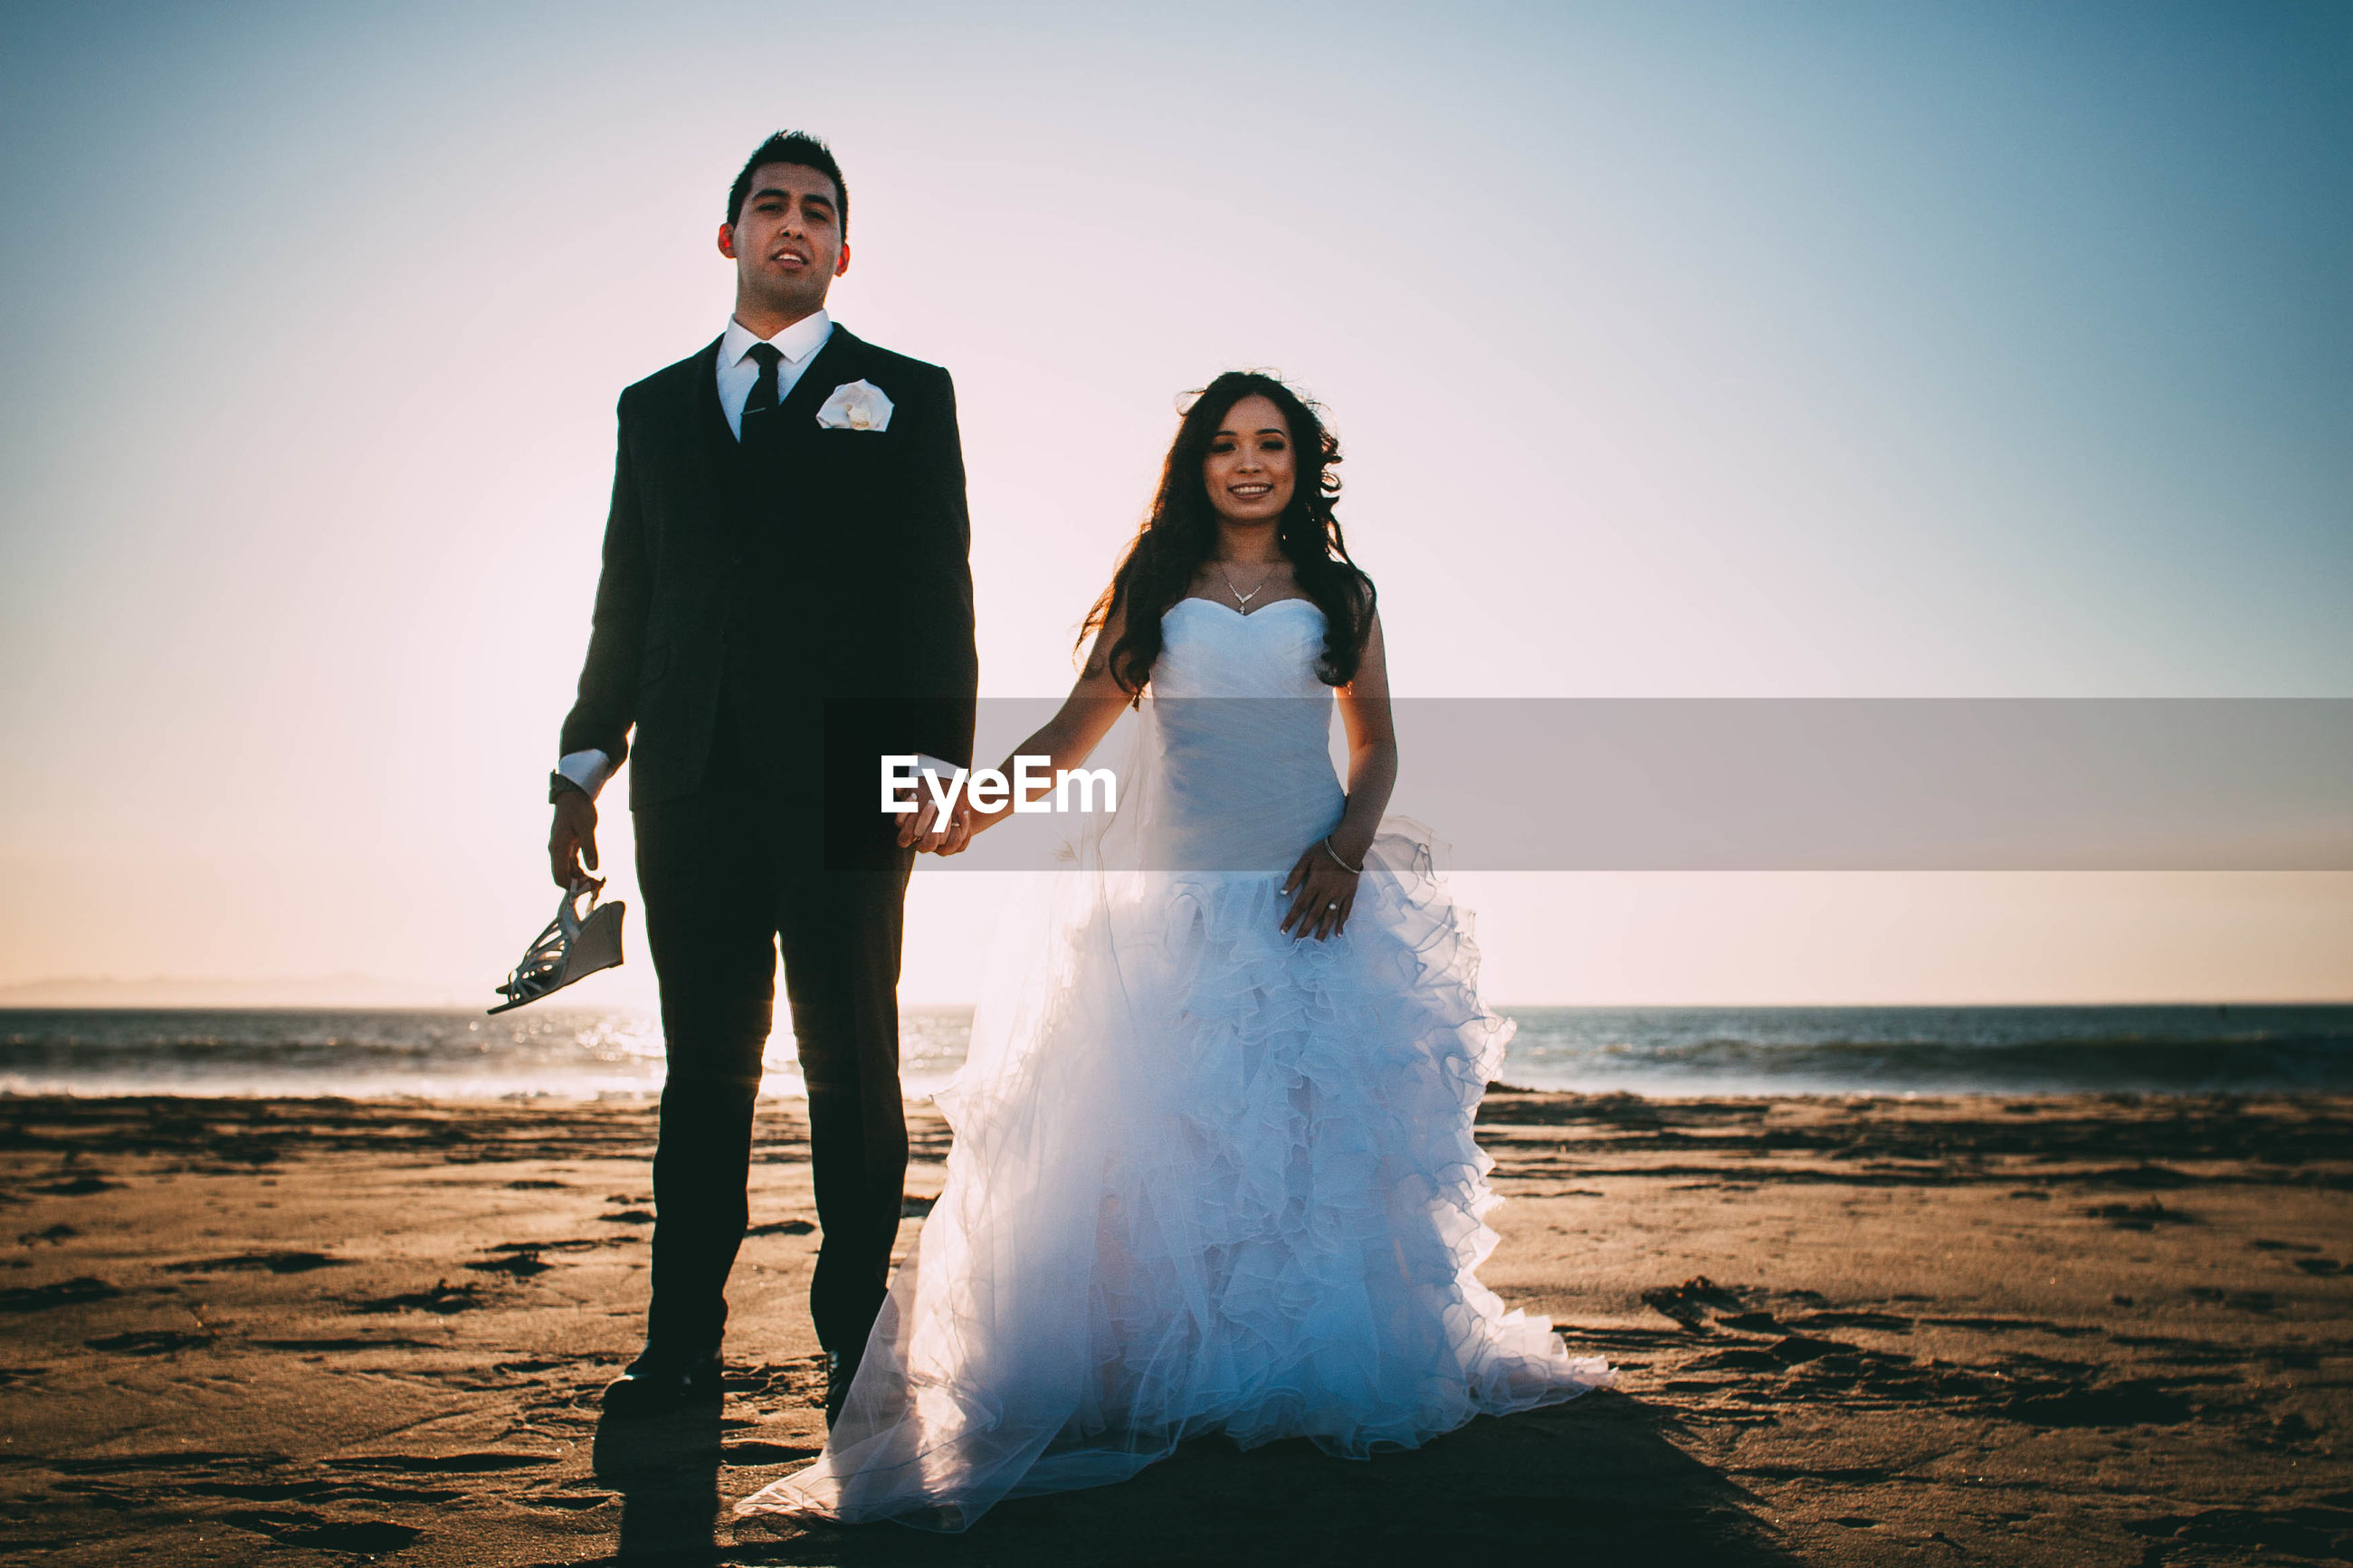 sea, real people, wedding, beach, bride, wedding dress, love, front view, two people, young women, standing, full length, sunset, togetherness, young adult, wife, nature, husband, outdoors, horizon over water, young men, looking at camera, sky, lifestyles, groom, couple - relationship, clear sky, scenics, bonding, life events, bridegroom, water, portrait, well-dressed, day, beauty in nature, people